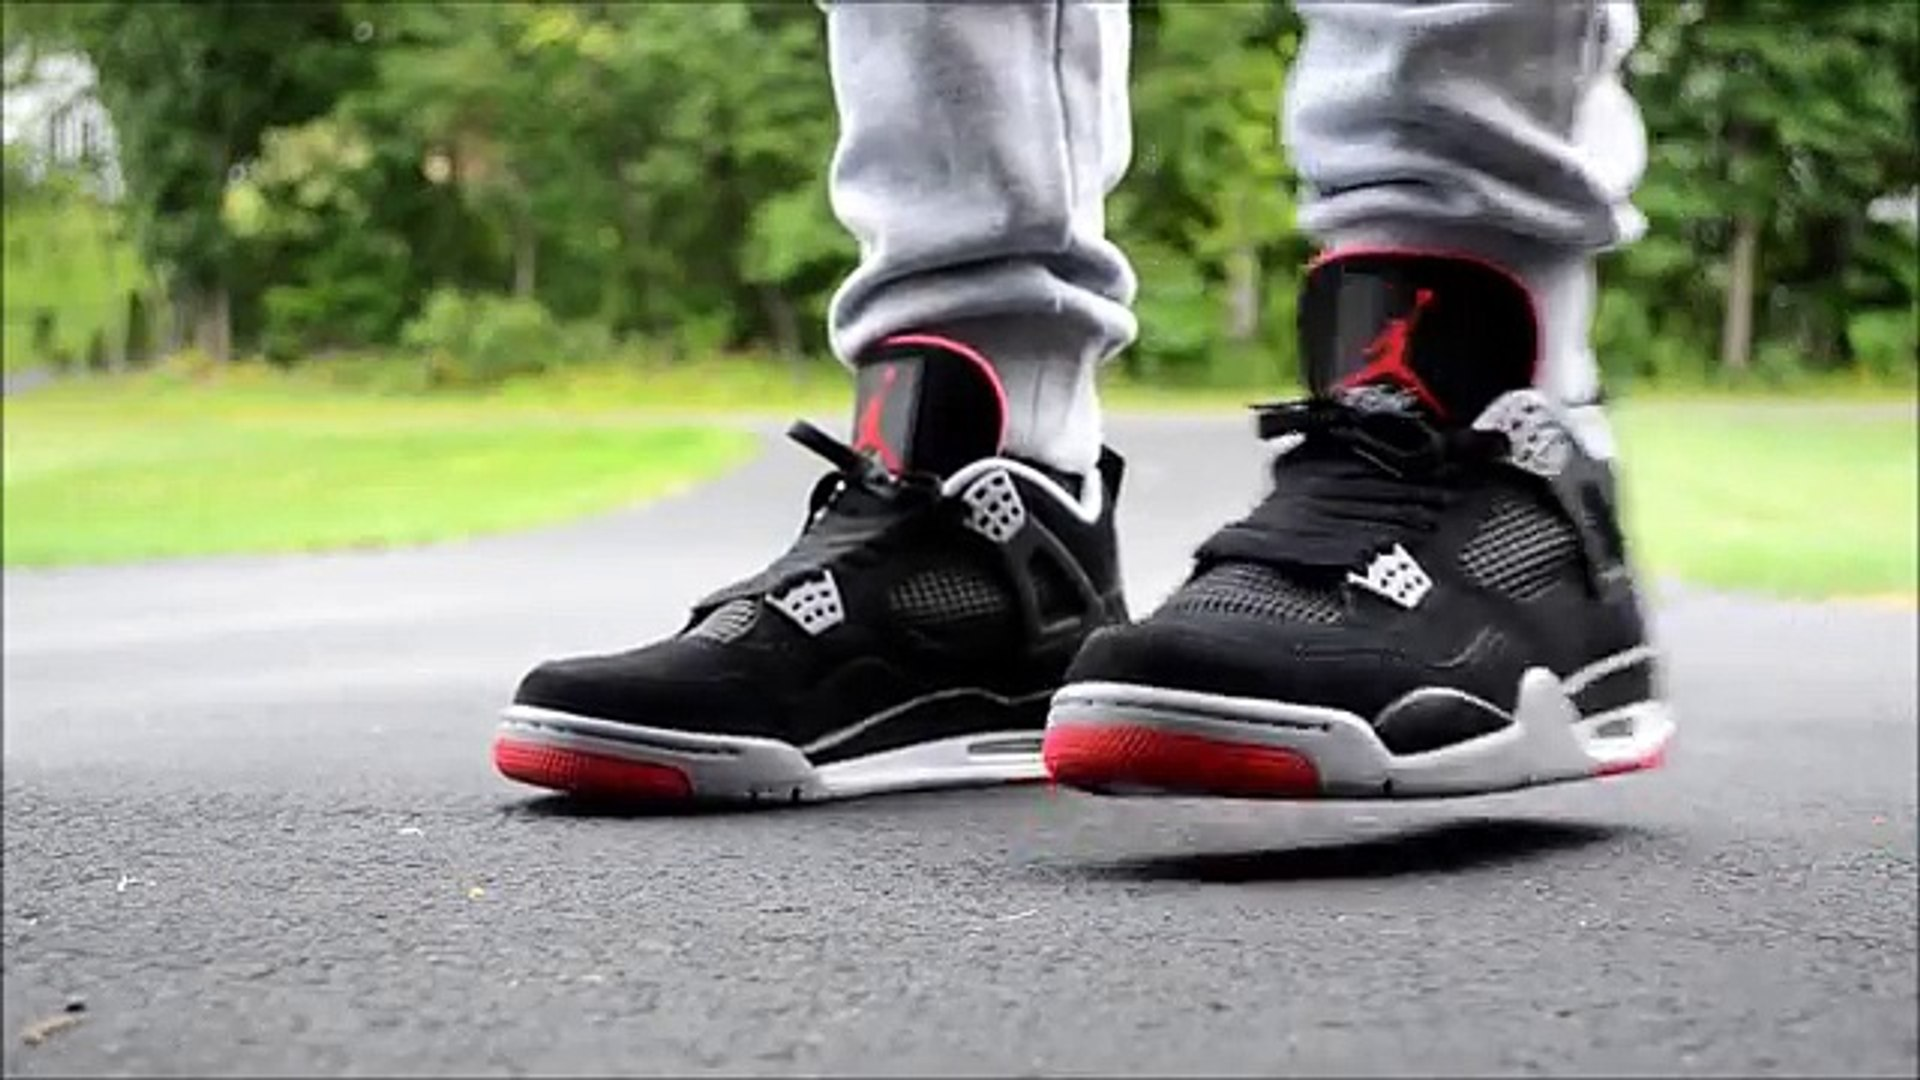 Jordan Black On Air Feet Bred 4 0wP8OXnk